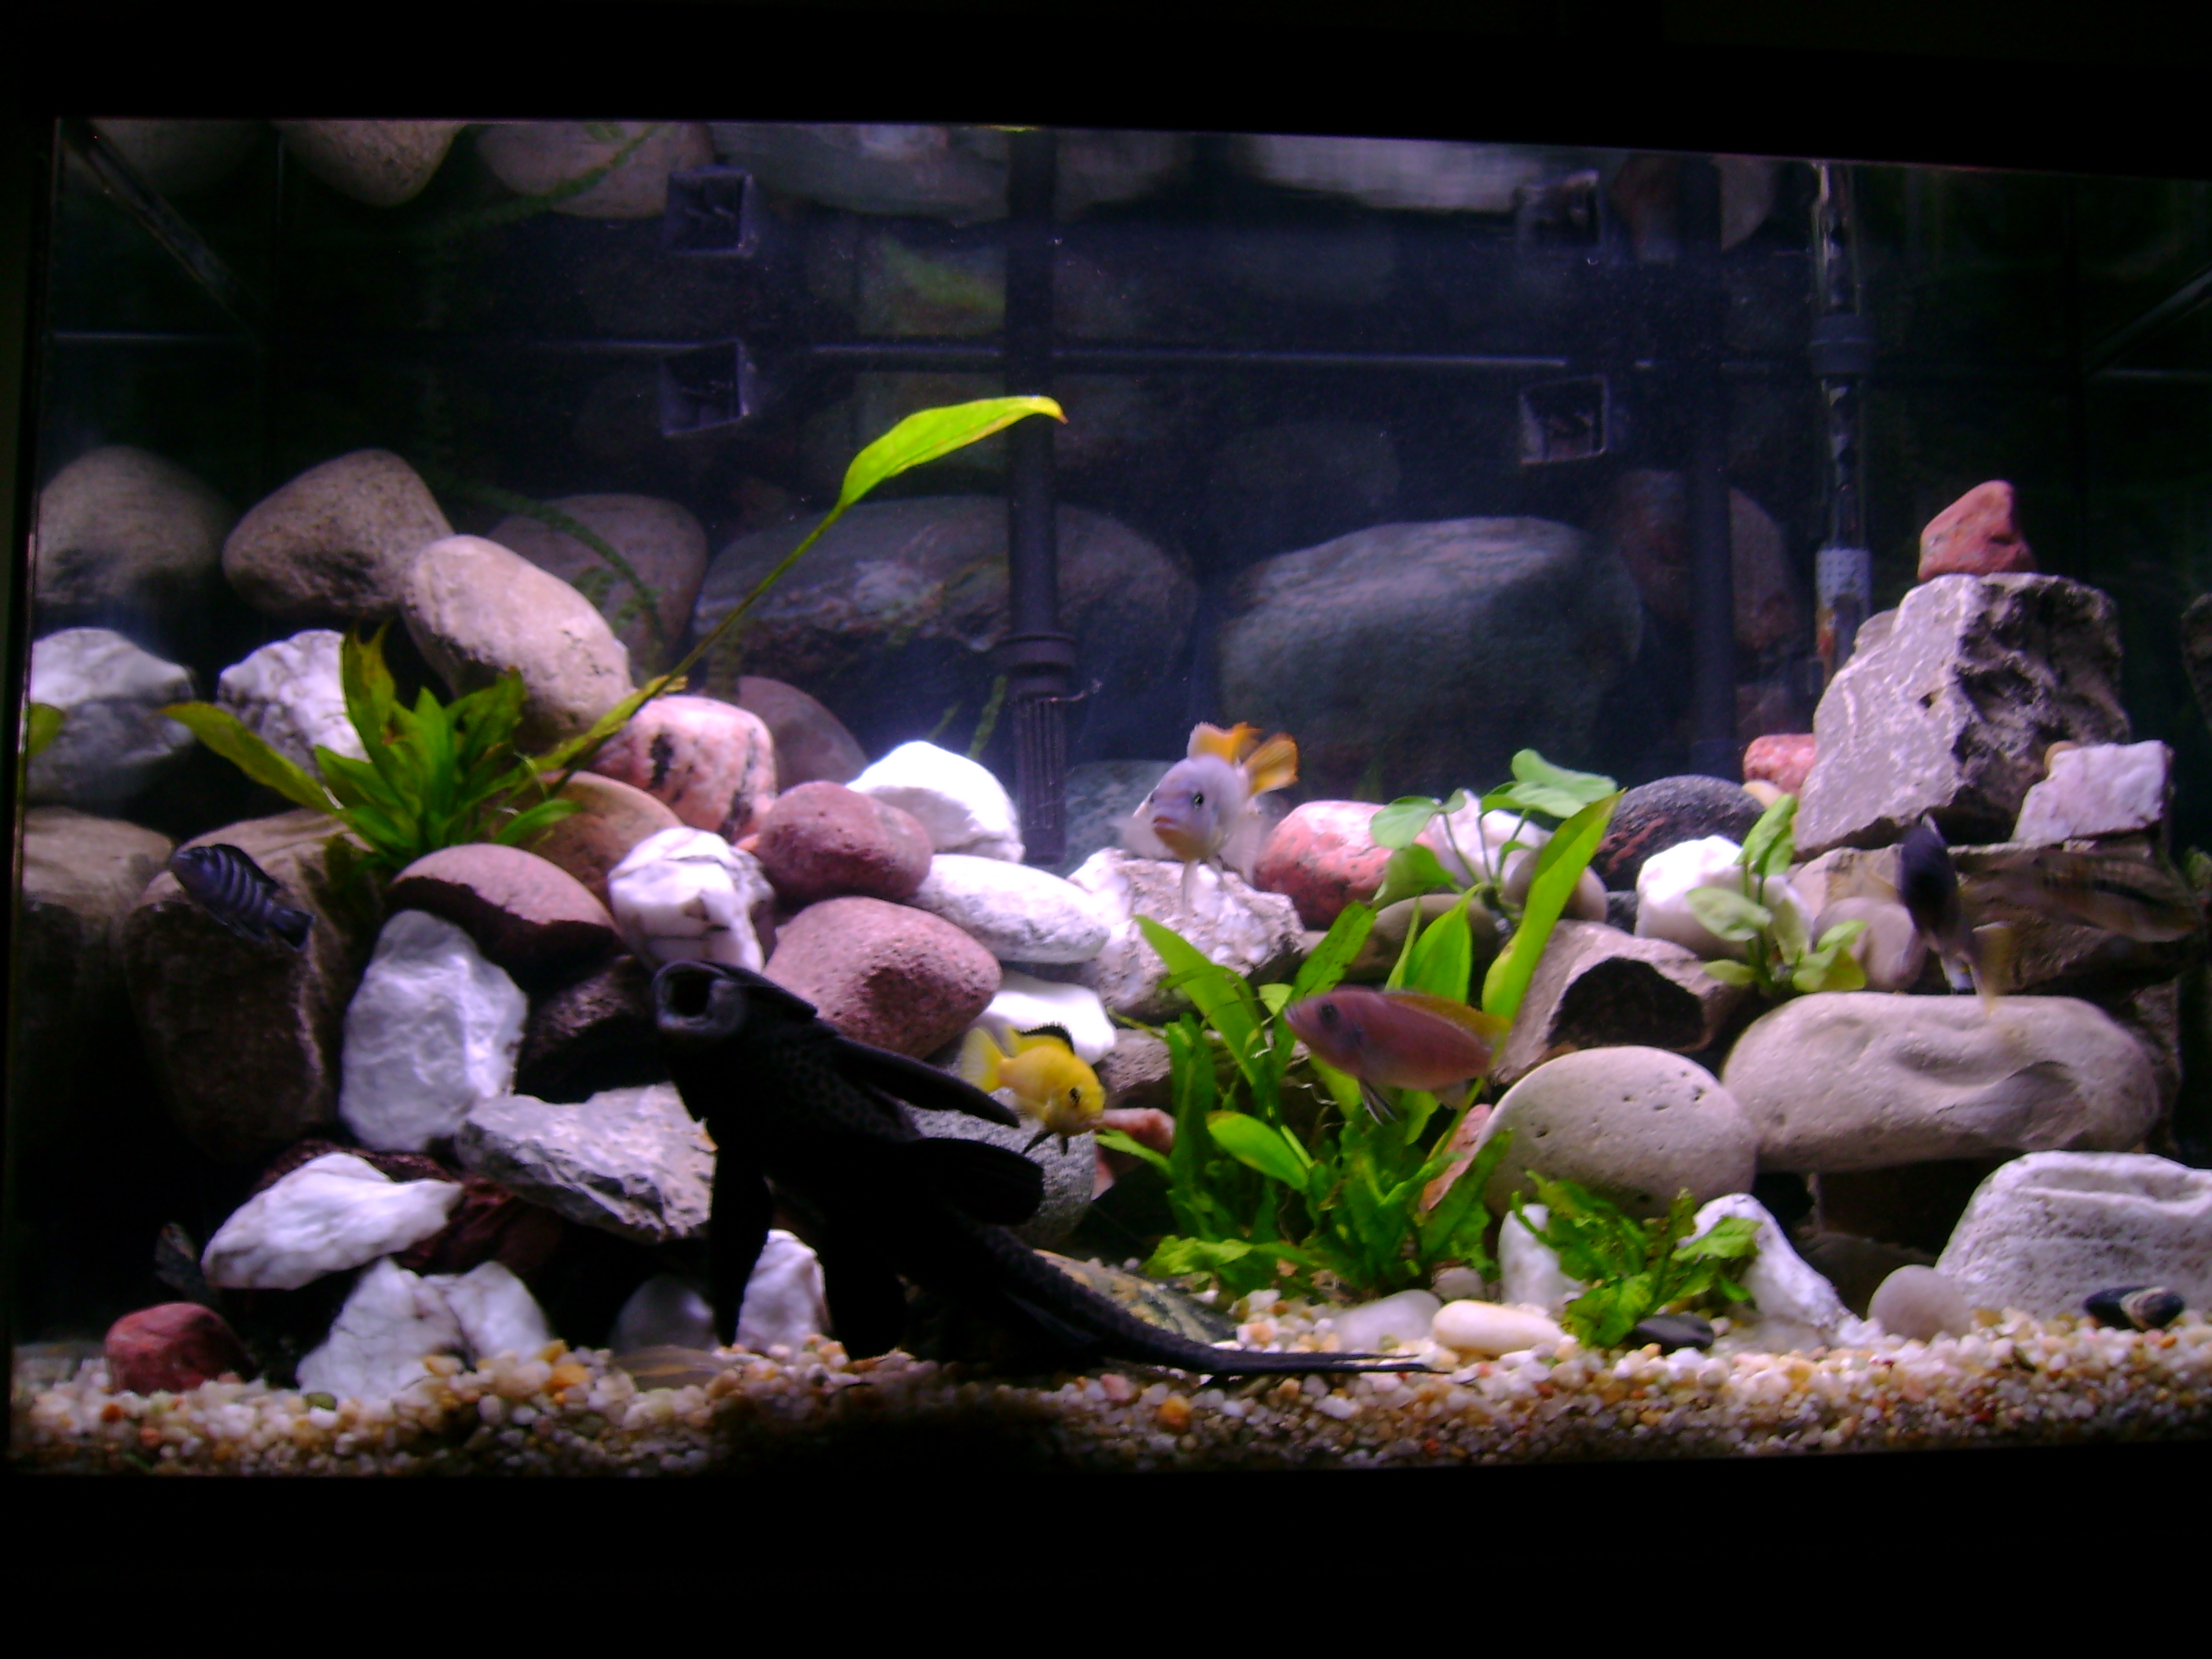 Cichlid aquarium cichlids and african cichlids on pinterest for African cichlid tank decoration